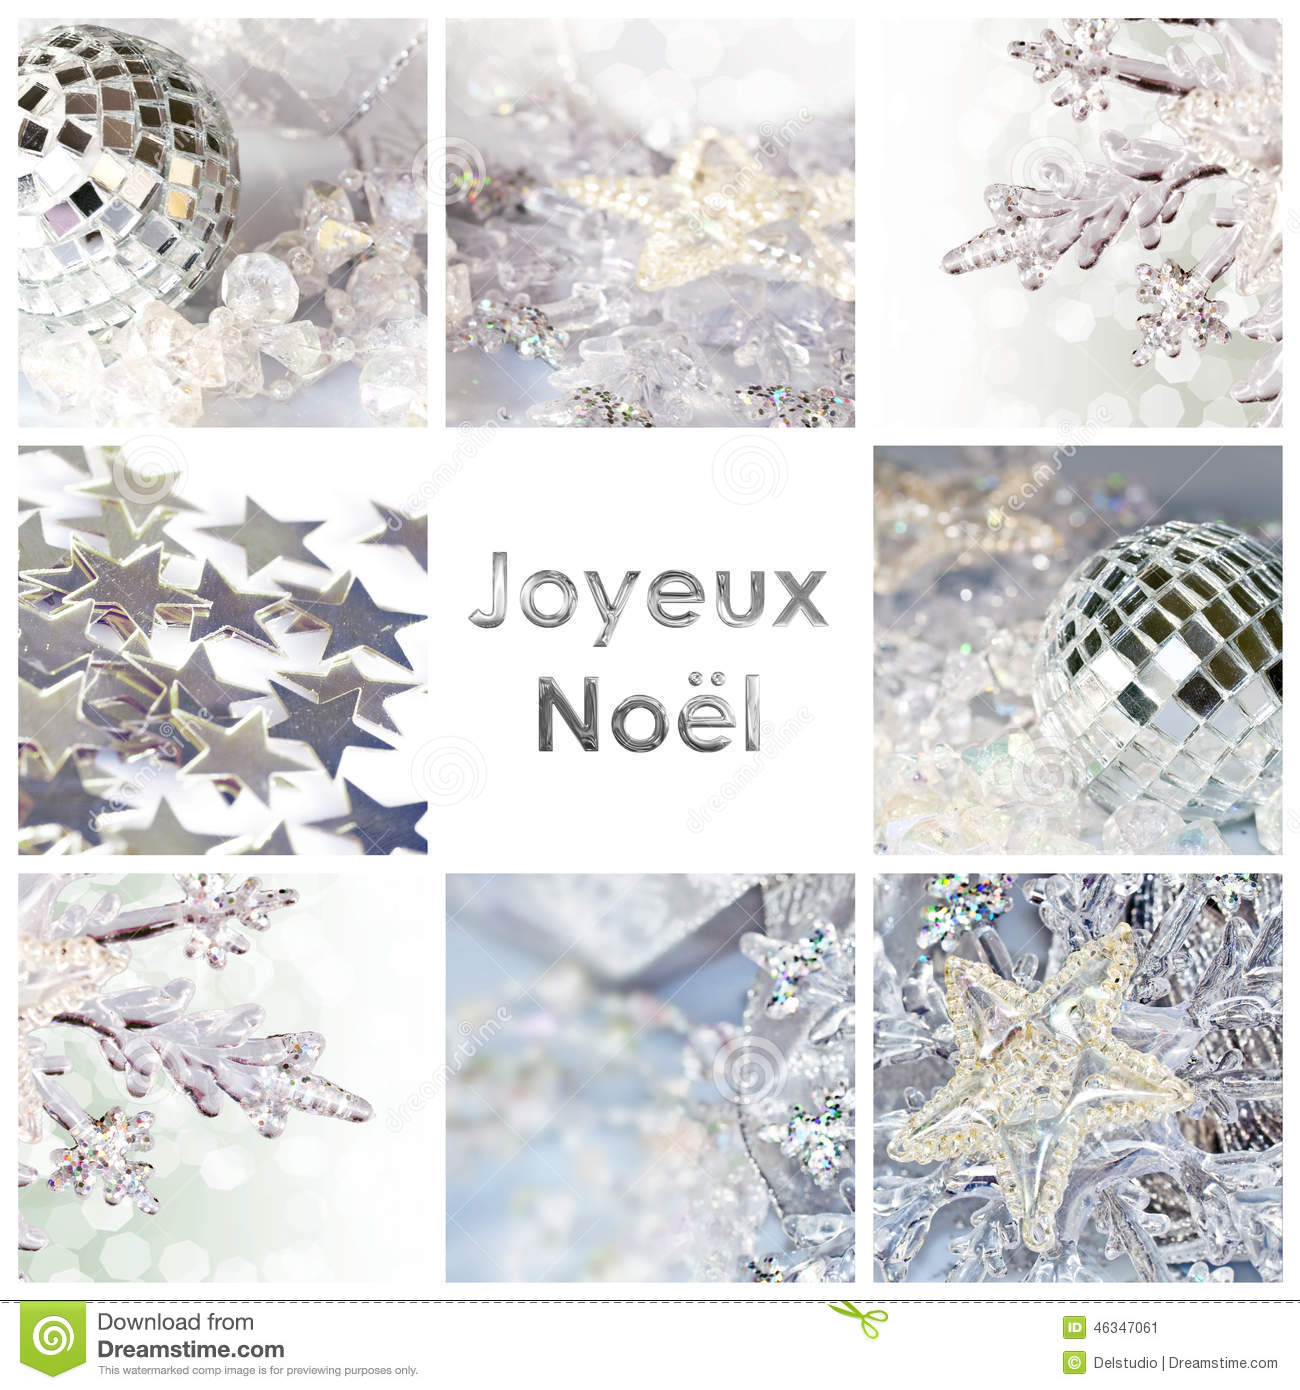 download square greeting card joyeux noel meaning merry christmas in french stock image image - Merry Christmas Meaning